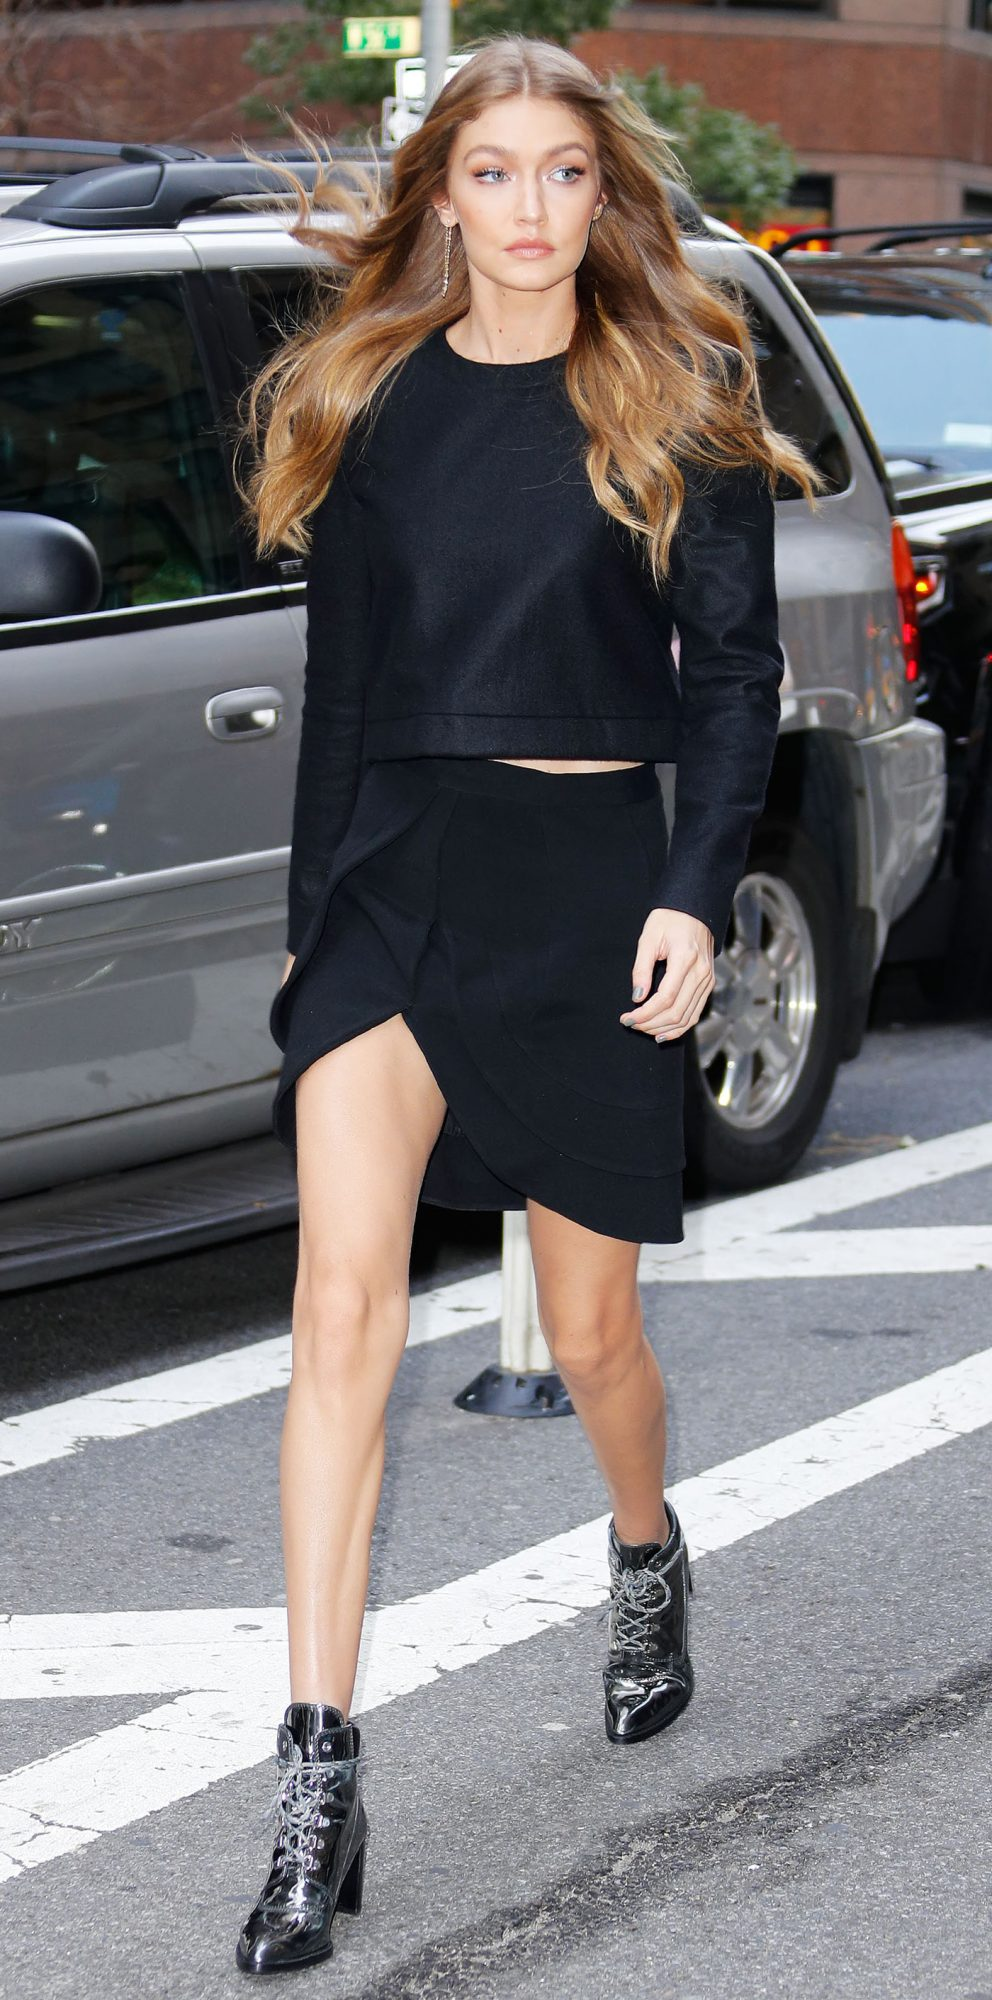 Gigi Hadid Flaunts Mile-Long Legs in One of Her Most Glam Looks Yet